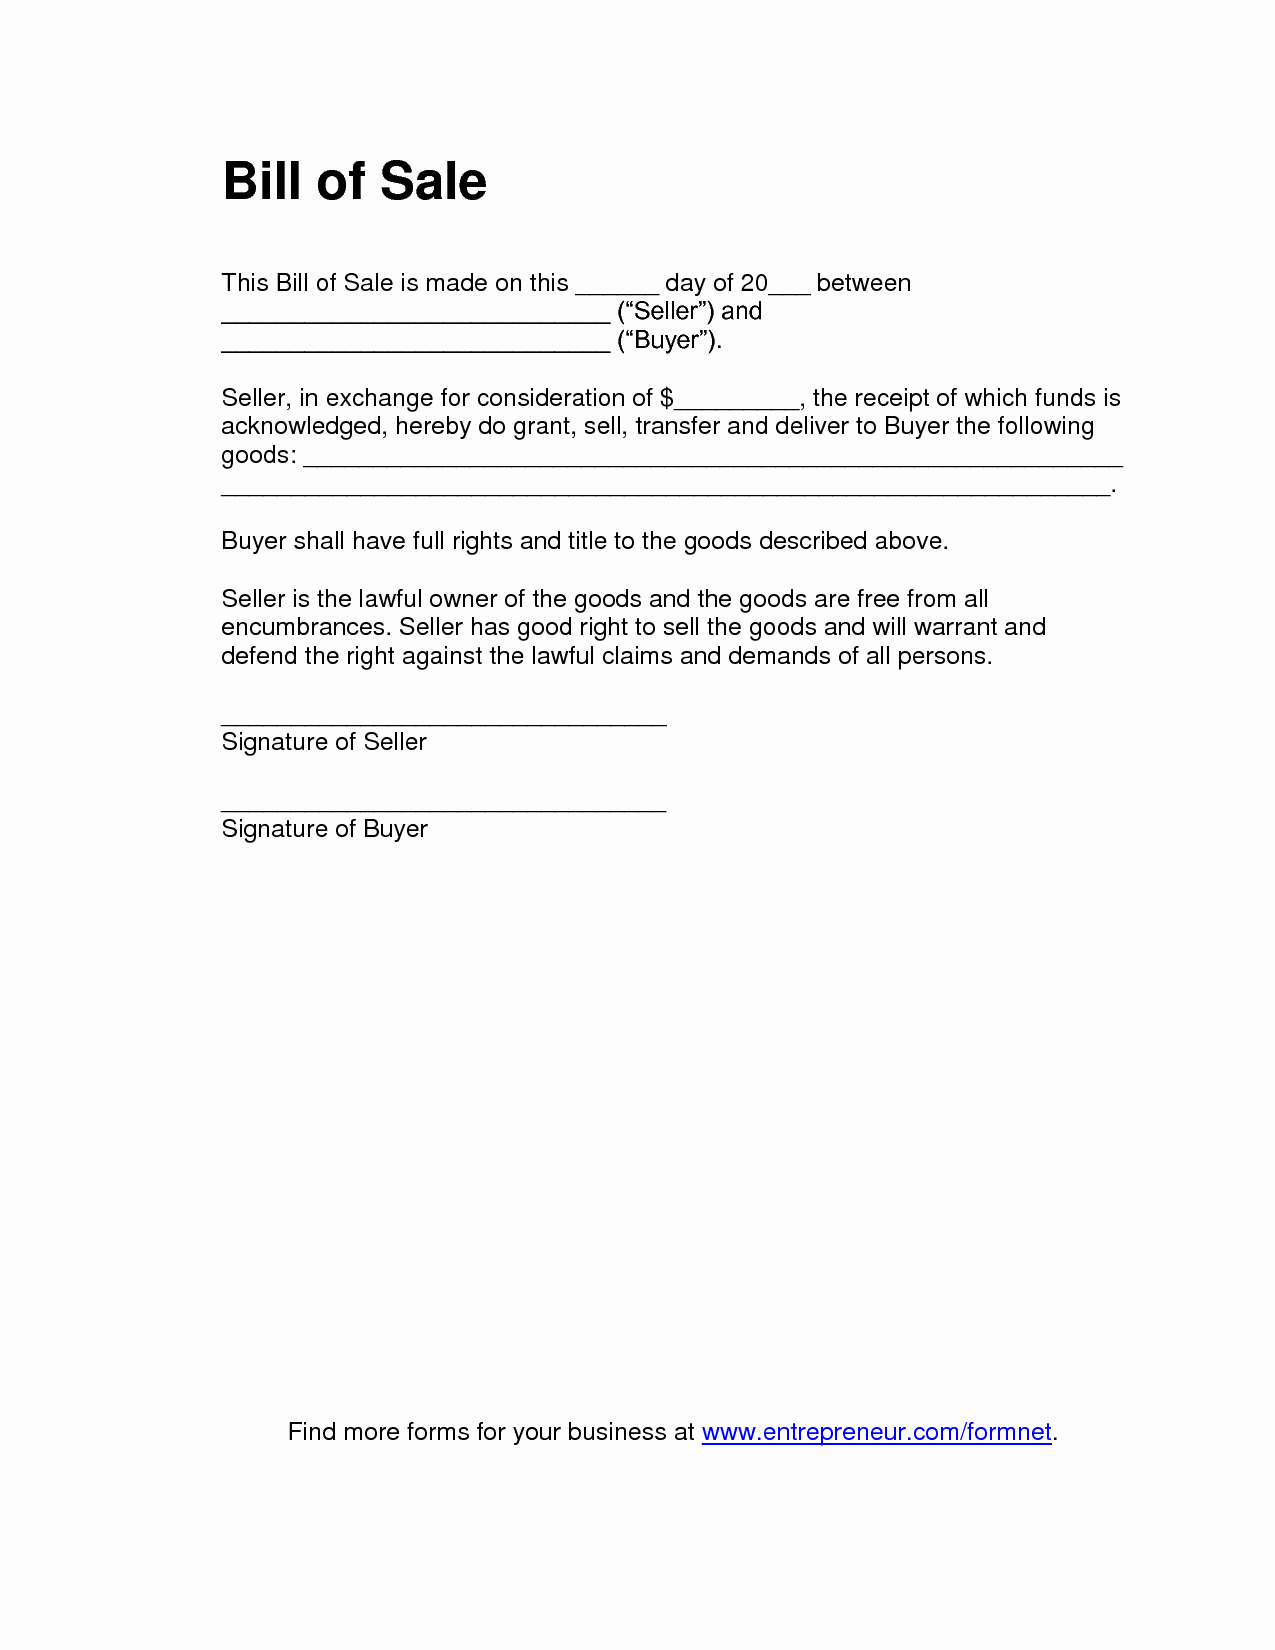 Bill Of Sale Example form Elegant Printable Sample Tractor Bill Of Sale form